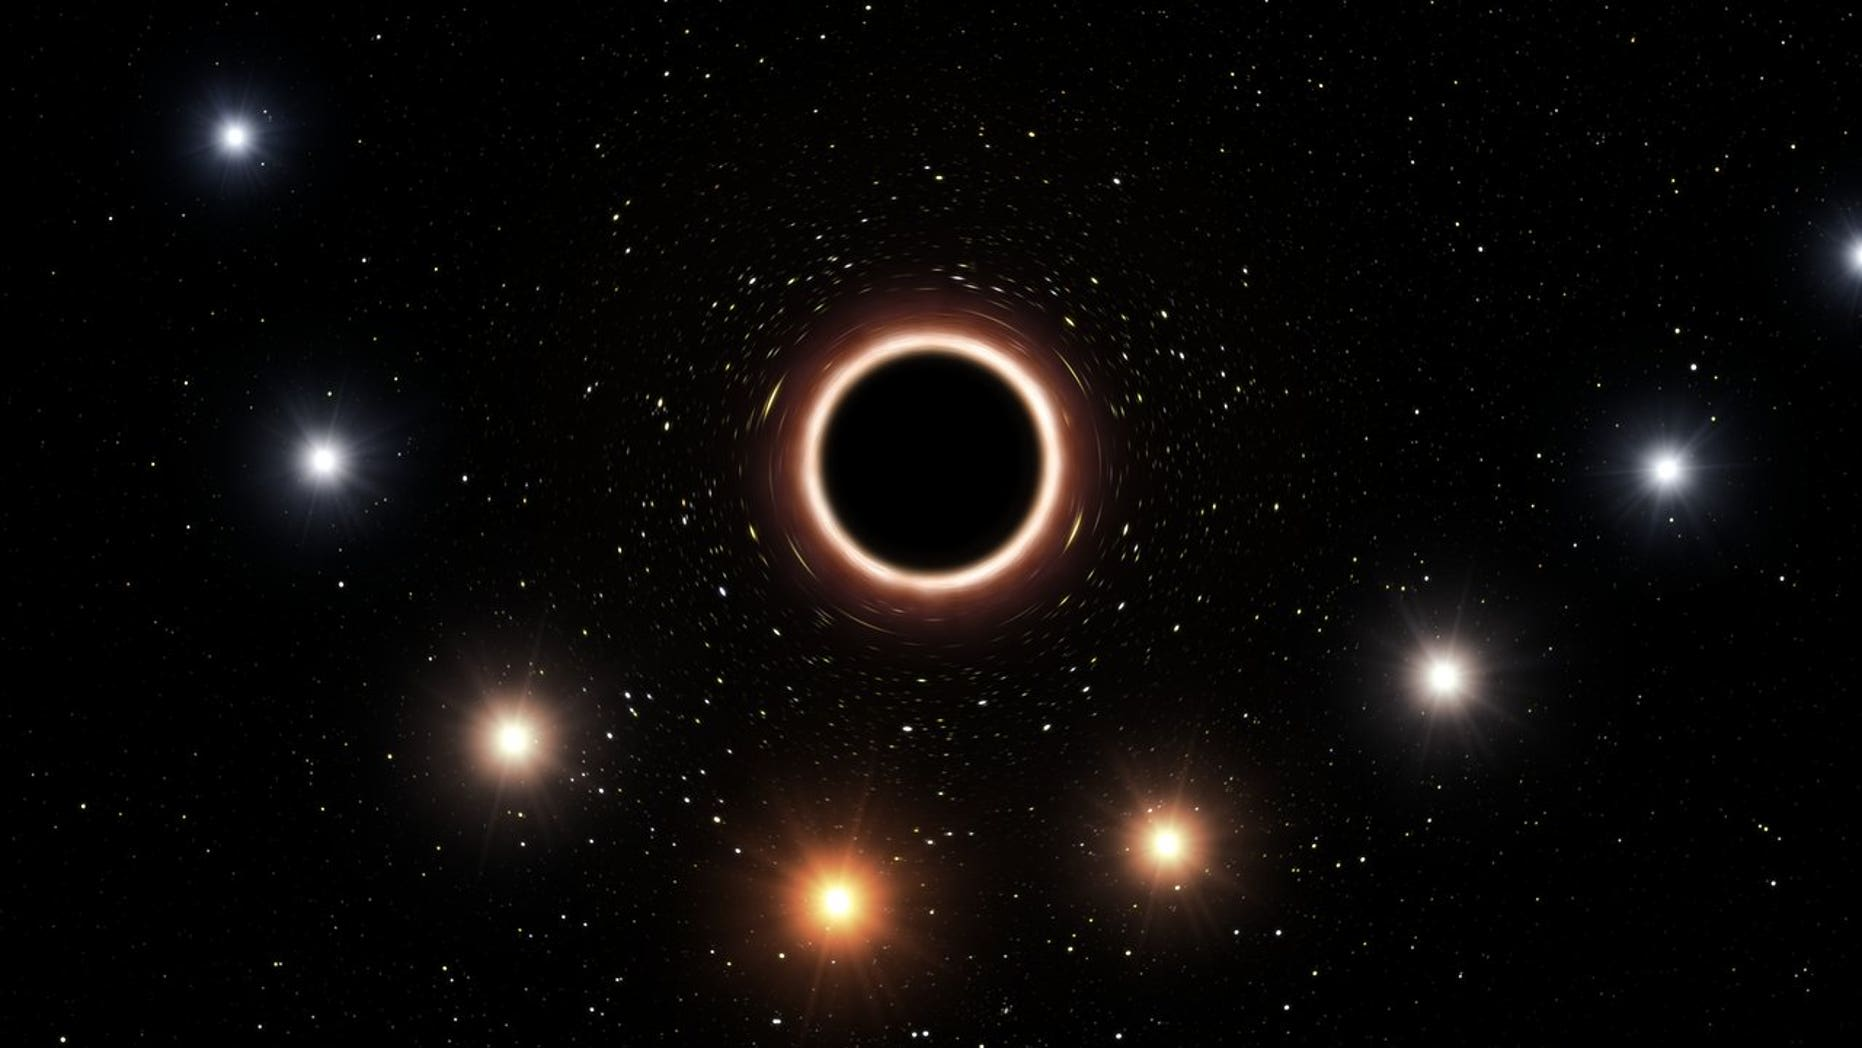 An artist's impression shows S2 traveling close to the supermassive black hole at the Milky Way's center.